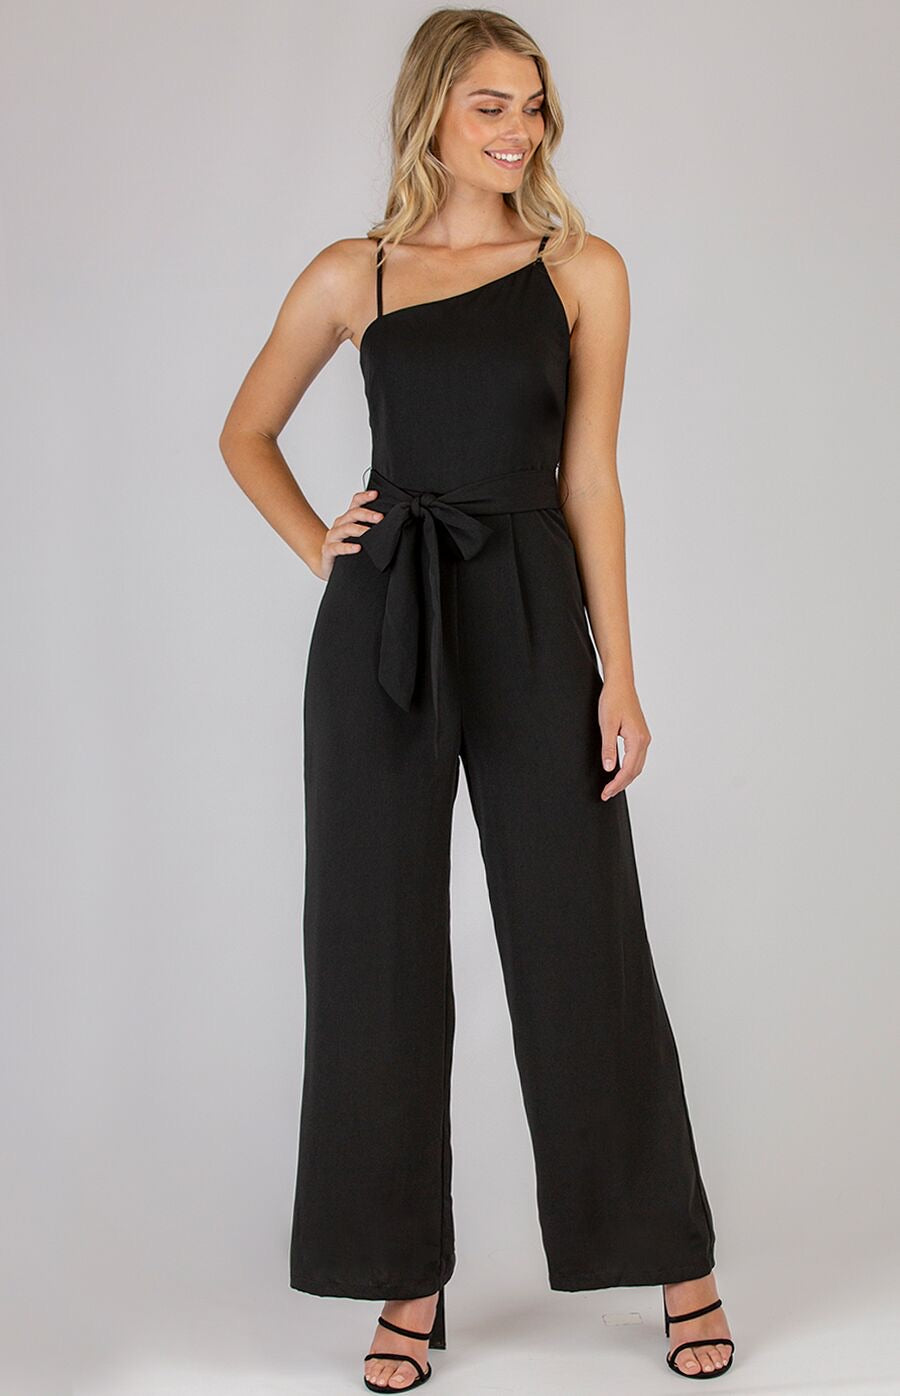 Asymmetrical Neckline Jumpsuit with Belt